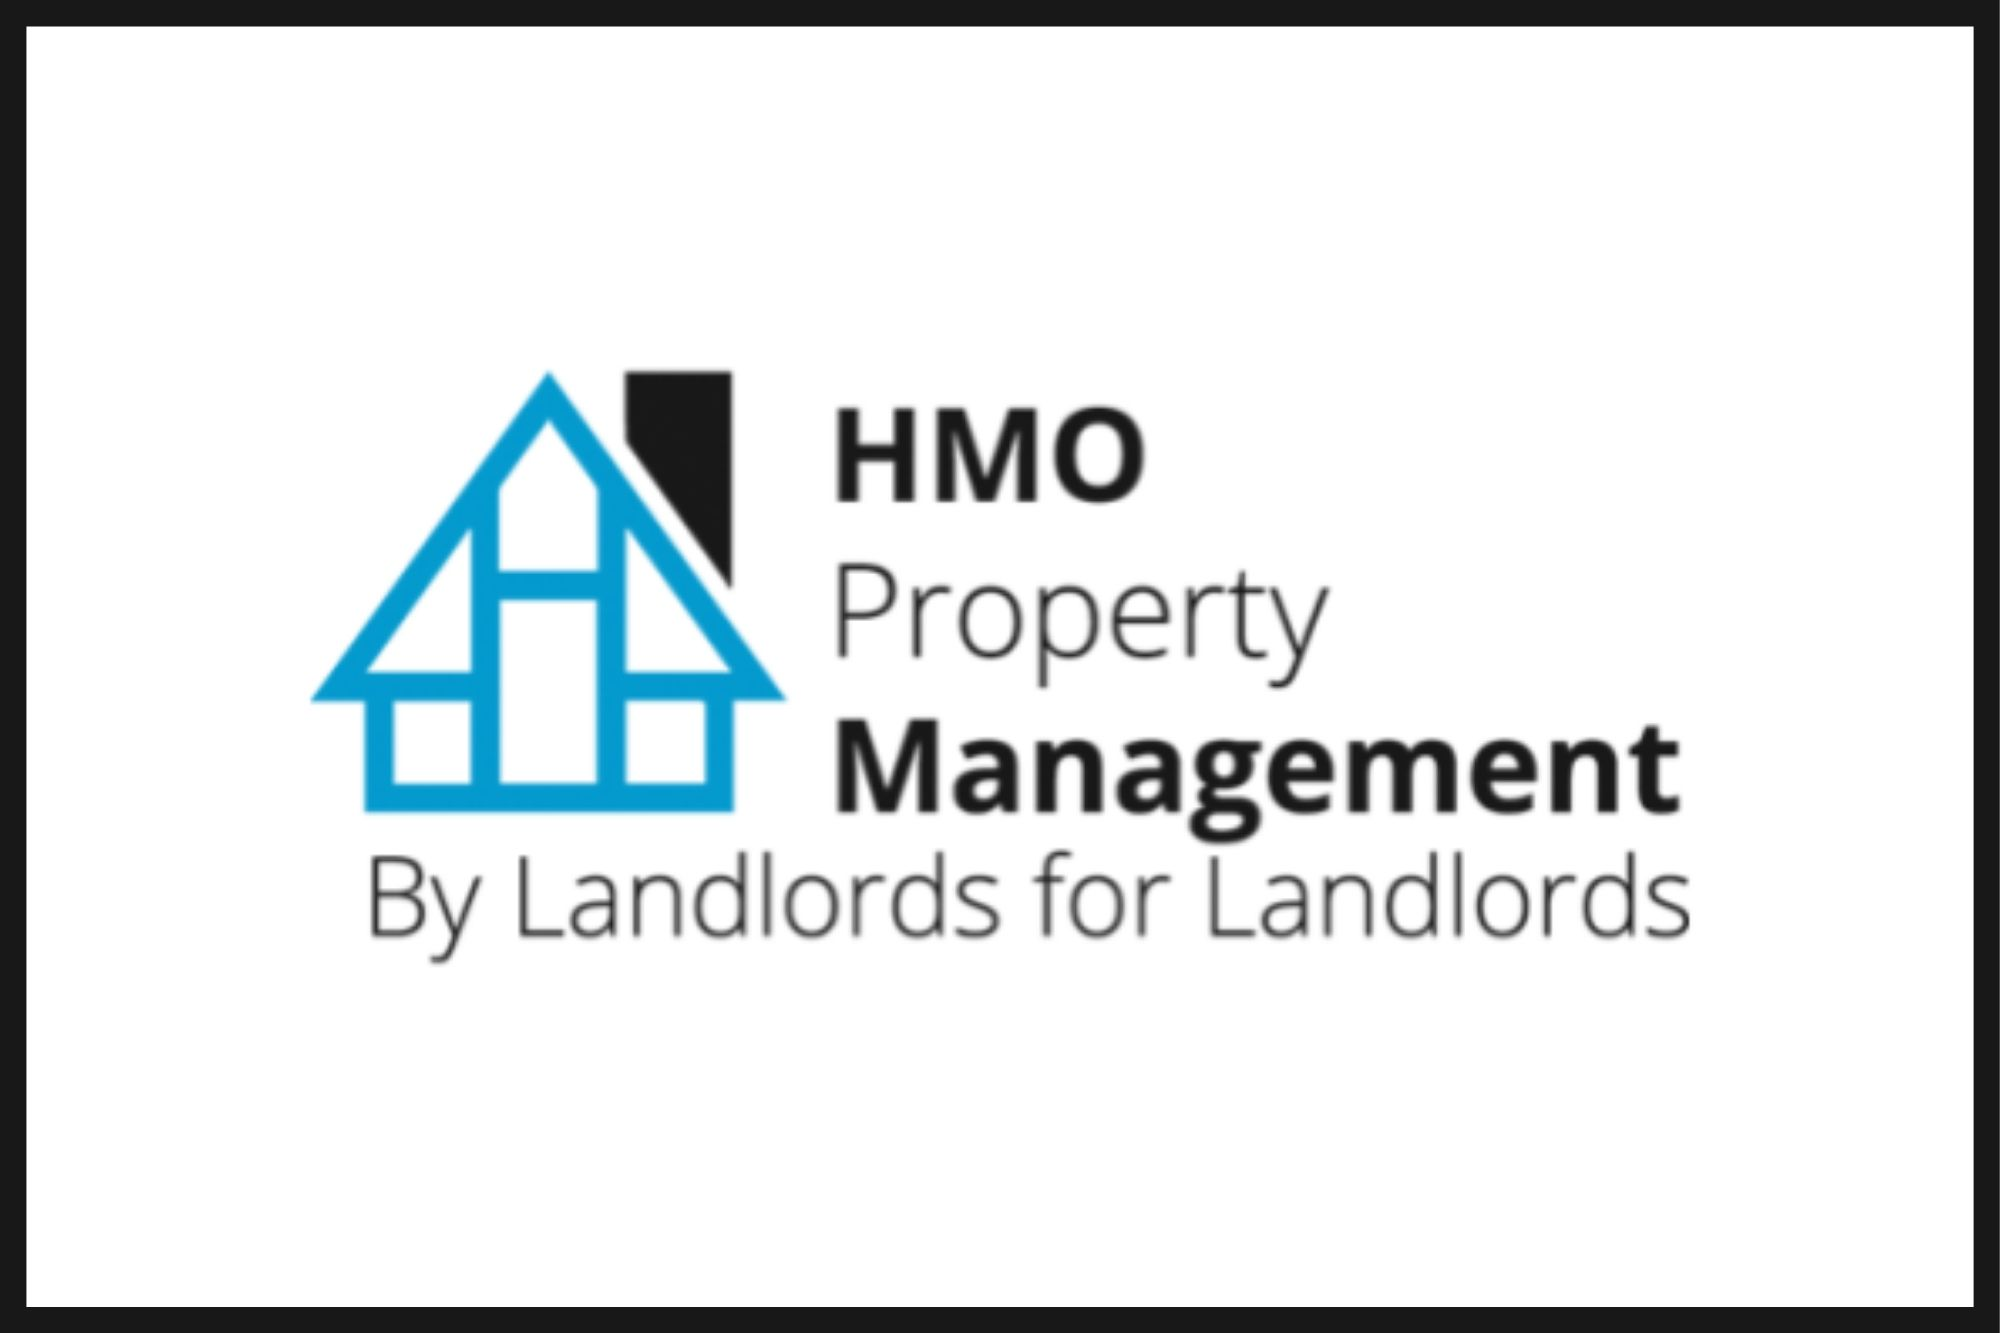 HMO Property Management